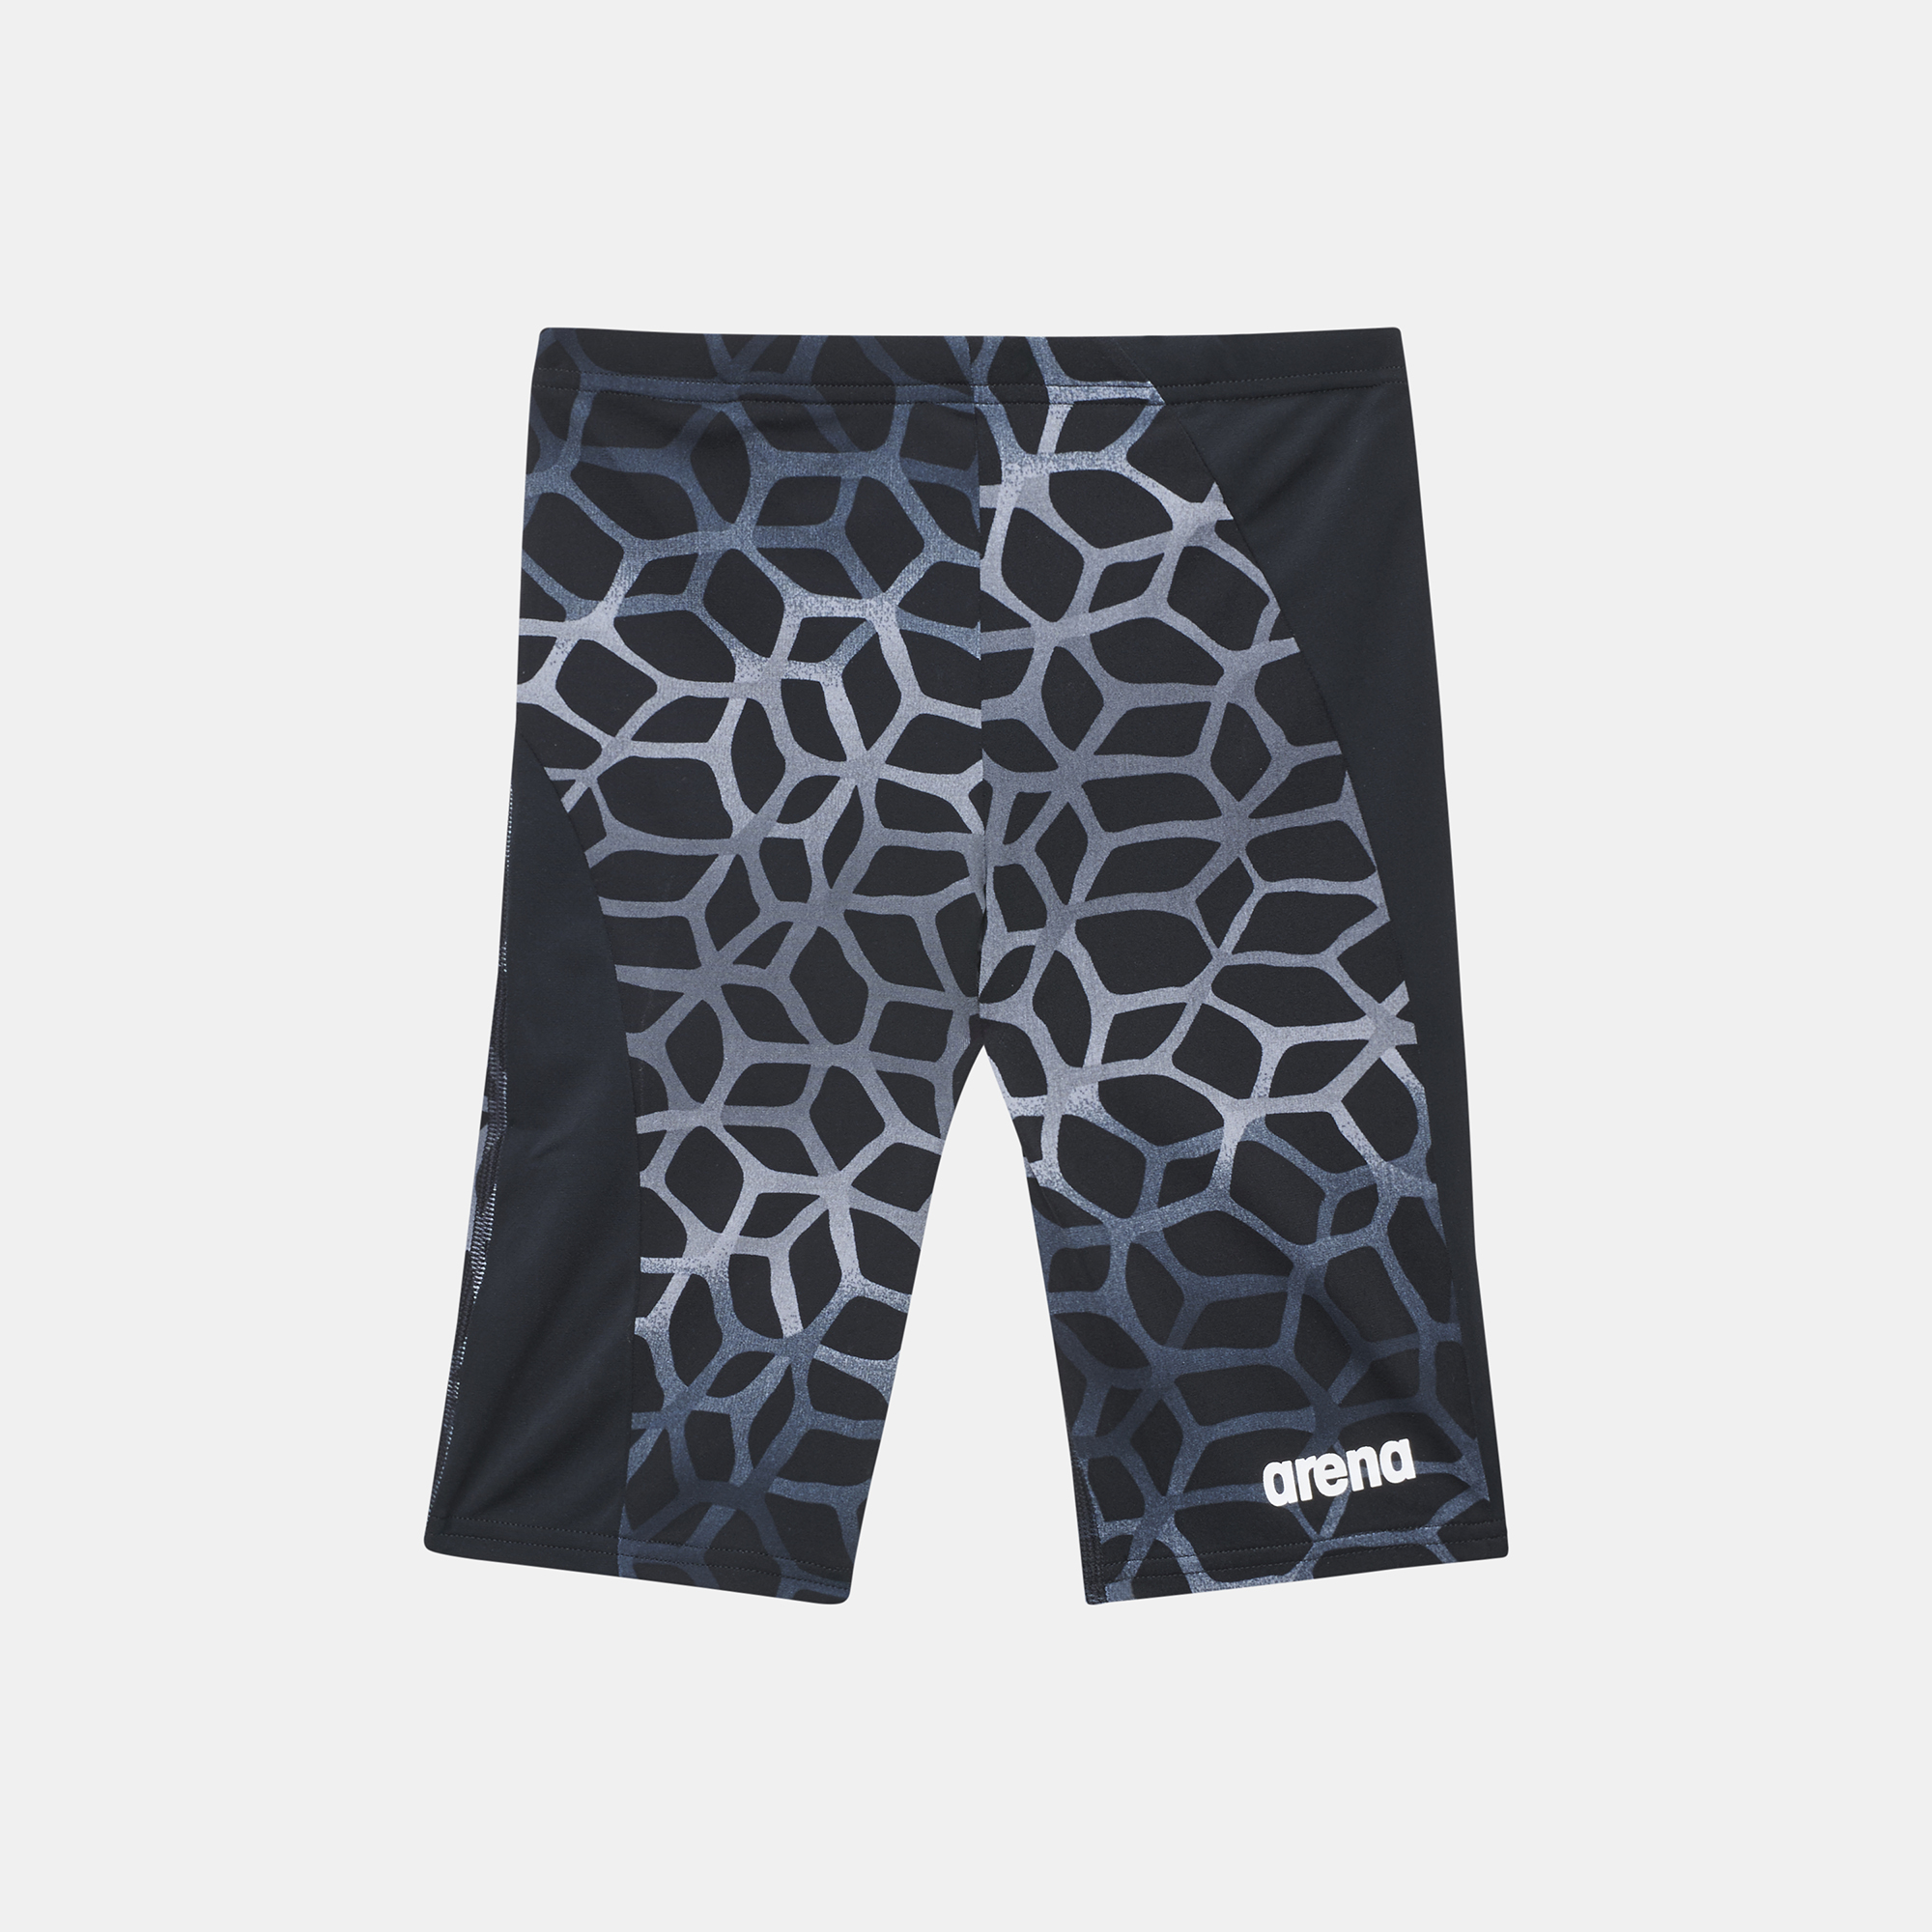 e5fc11fba2 Shop Black Shop Black Arena Kids' Polycarbonite II Panel Jammer Swimming  Shorts exclusive for Kids by Arena | SSS